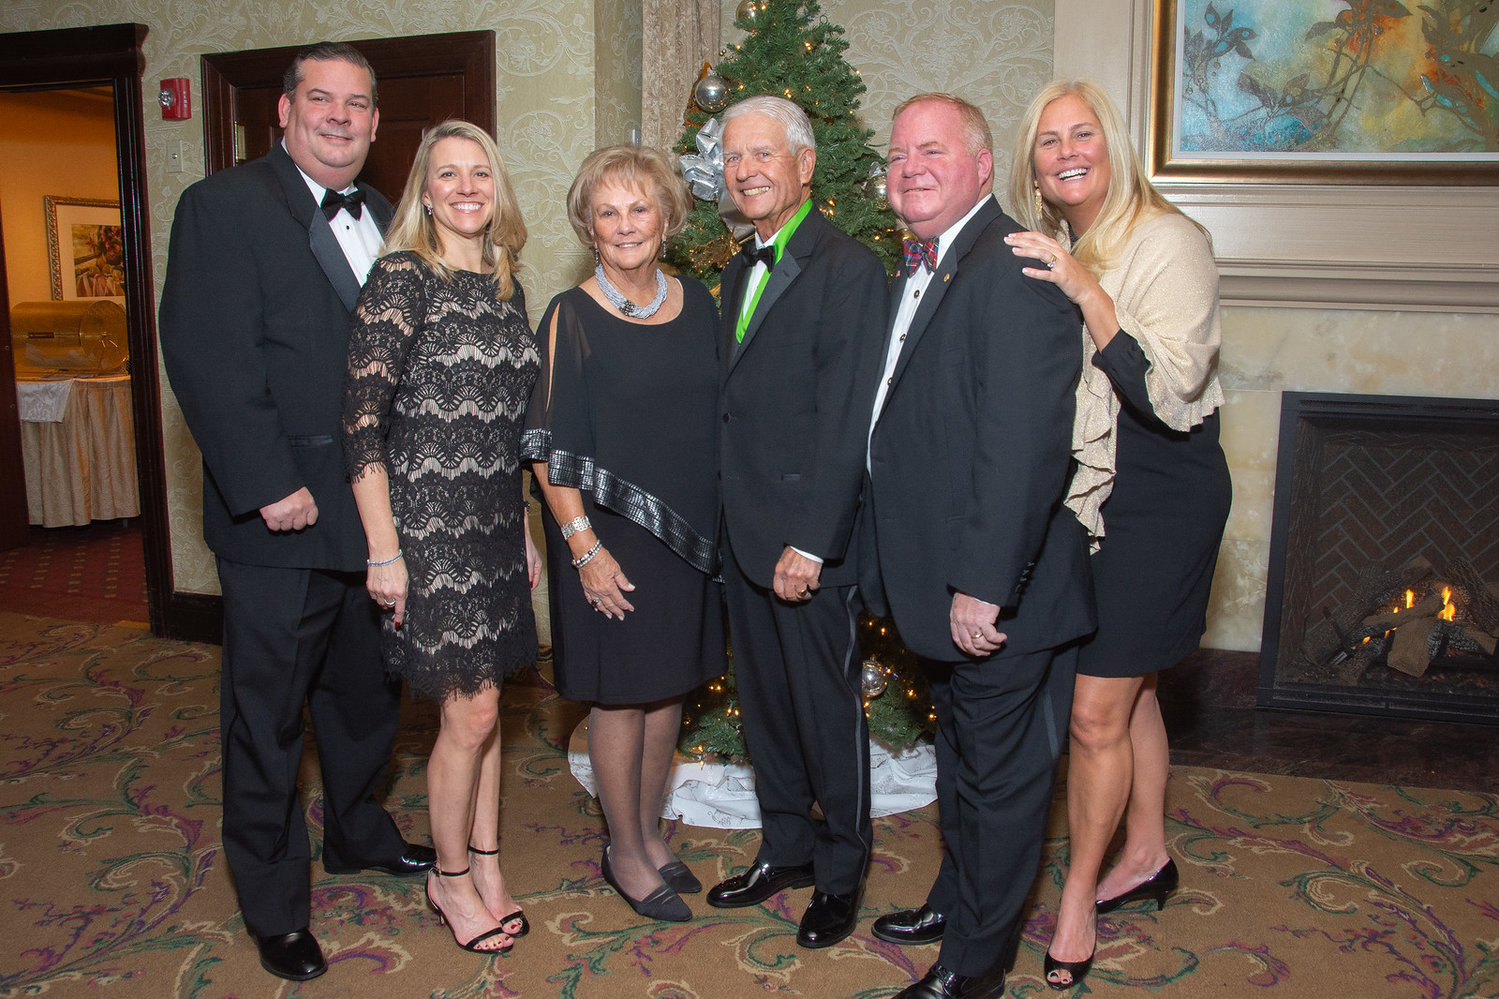 From left: Jim & Lara McCarthy, Jim & BettyAnn McCarthy, Fran & Mary Beth Darcy at the 2019 Mercy Ball.